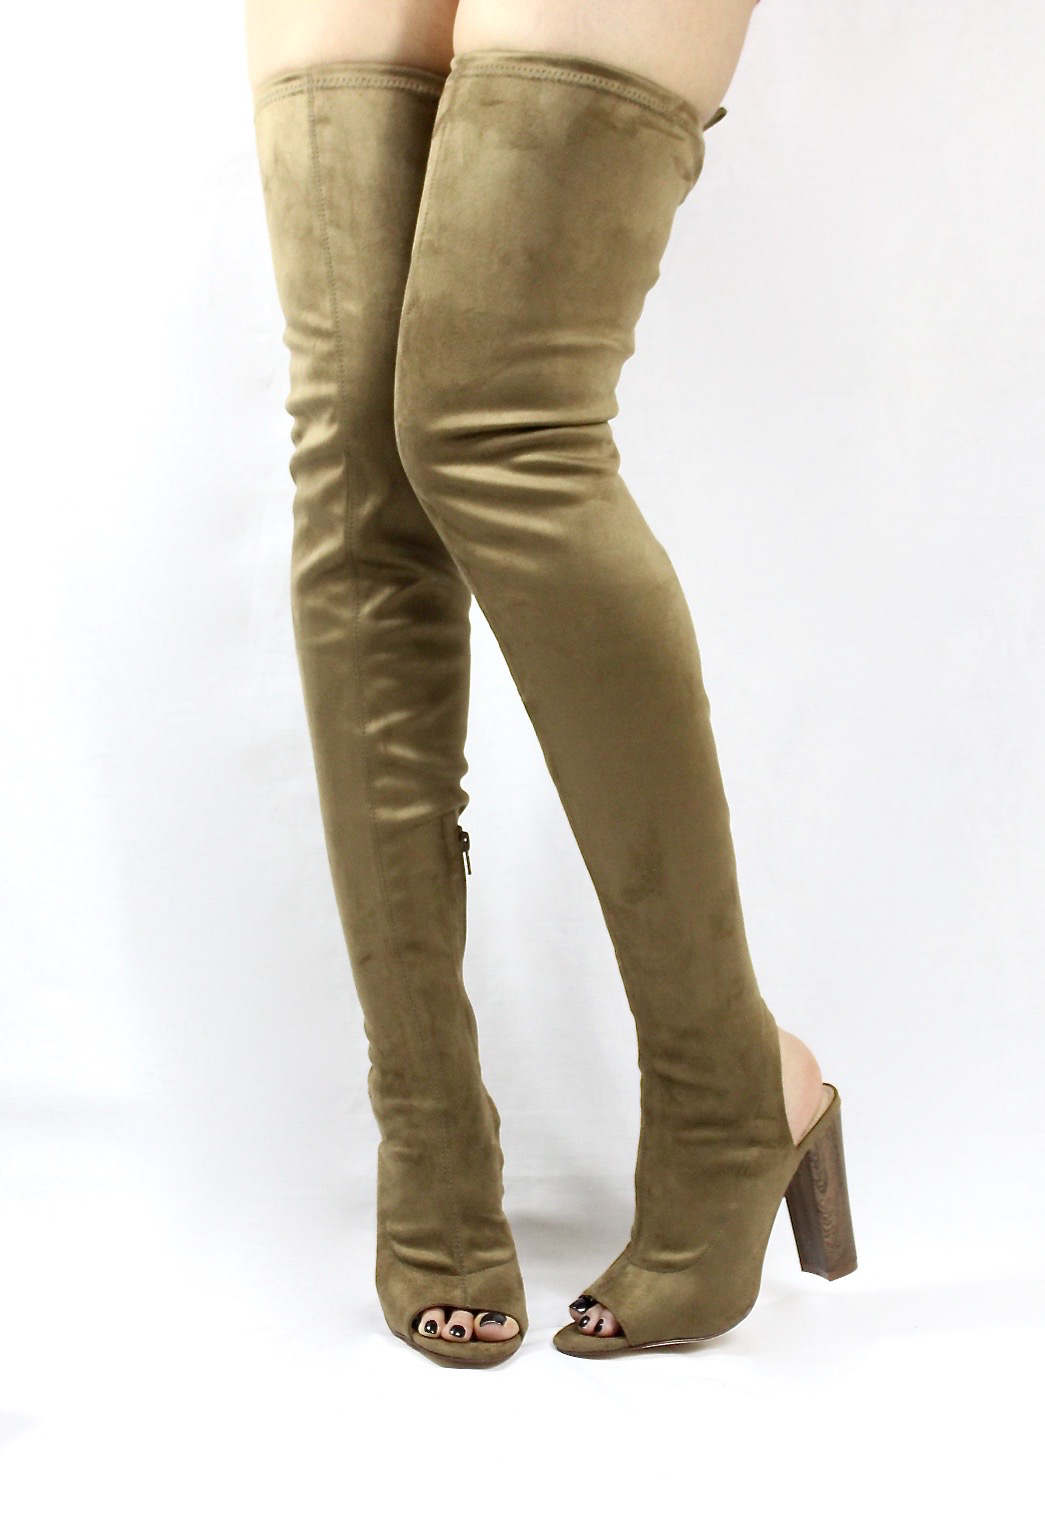 Liliana Sage-44 Olive Over the Knee Thigh High Open Toe Boots-4281